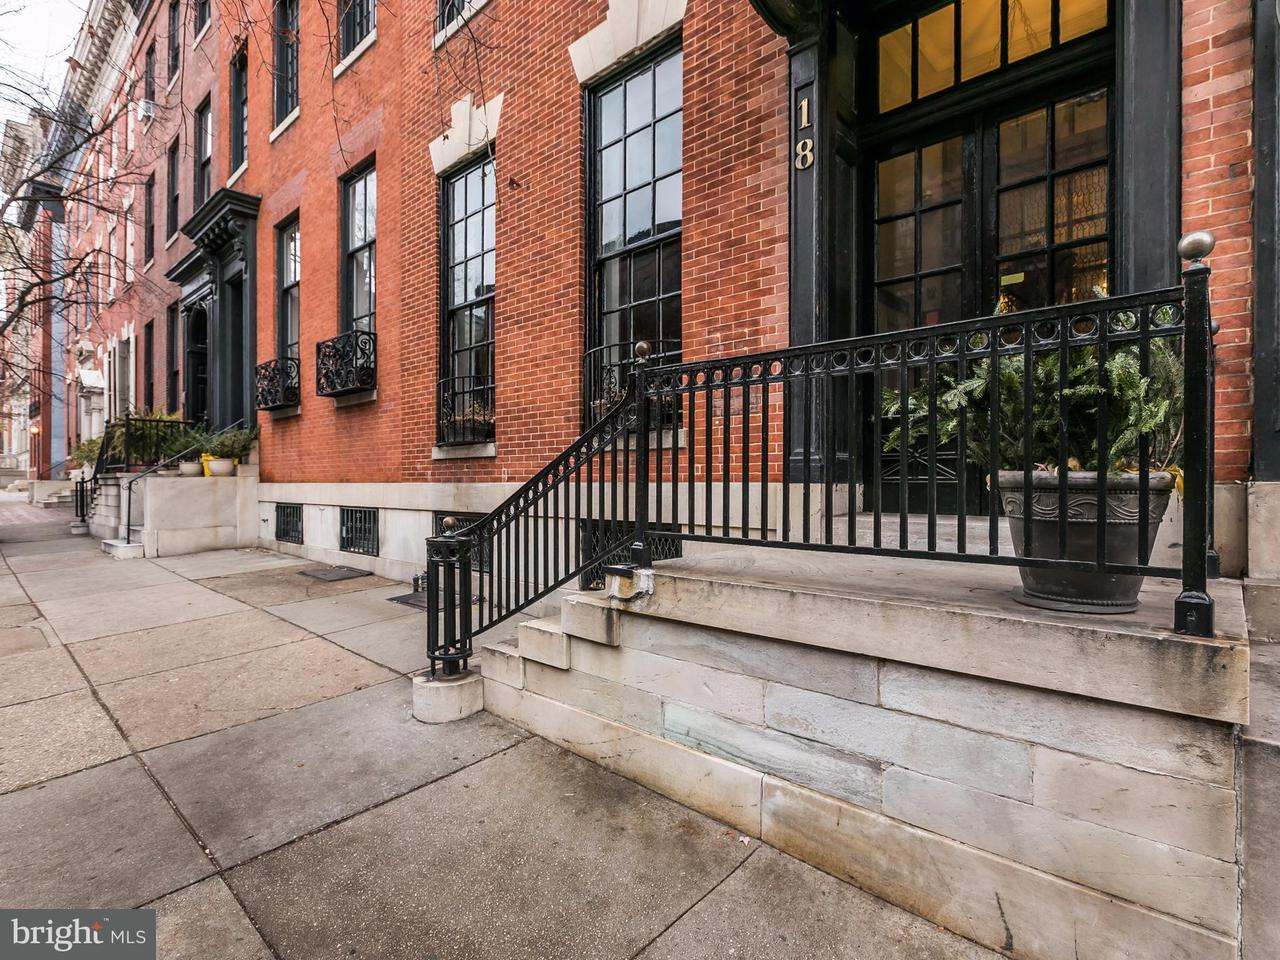 Other Residential for Rent at 18 Eager St Baltimore, Maryland 21202 United States